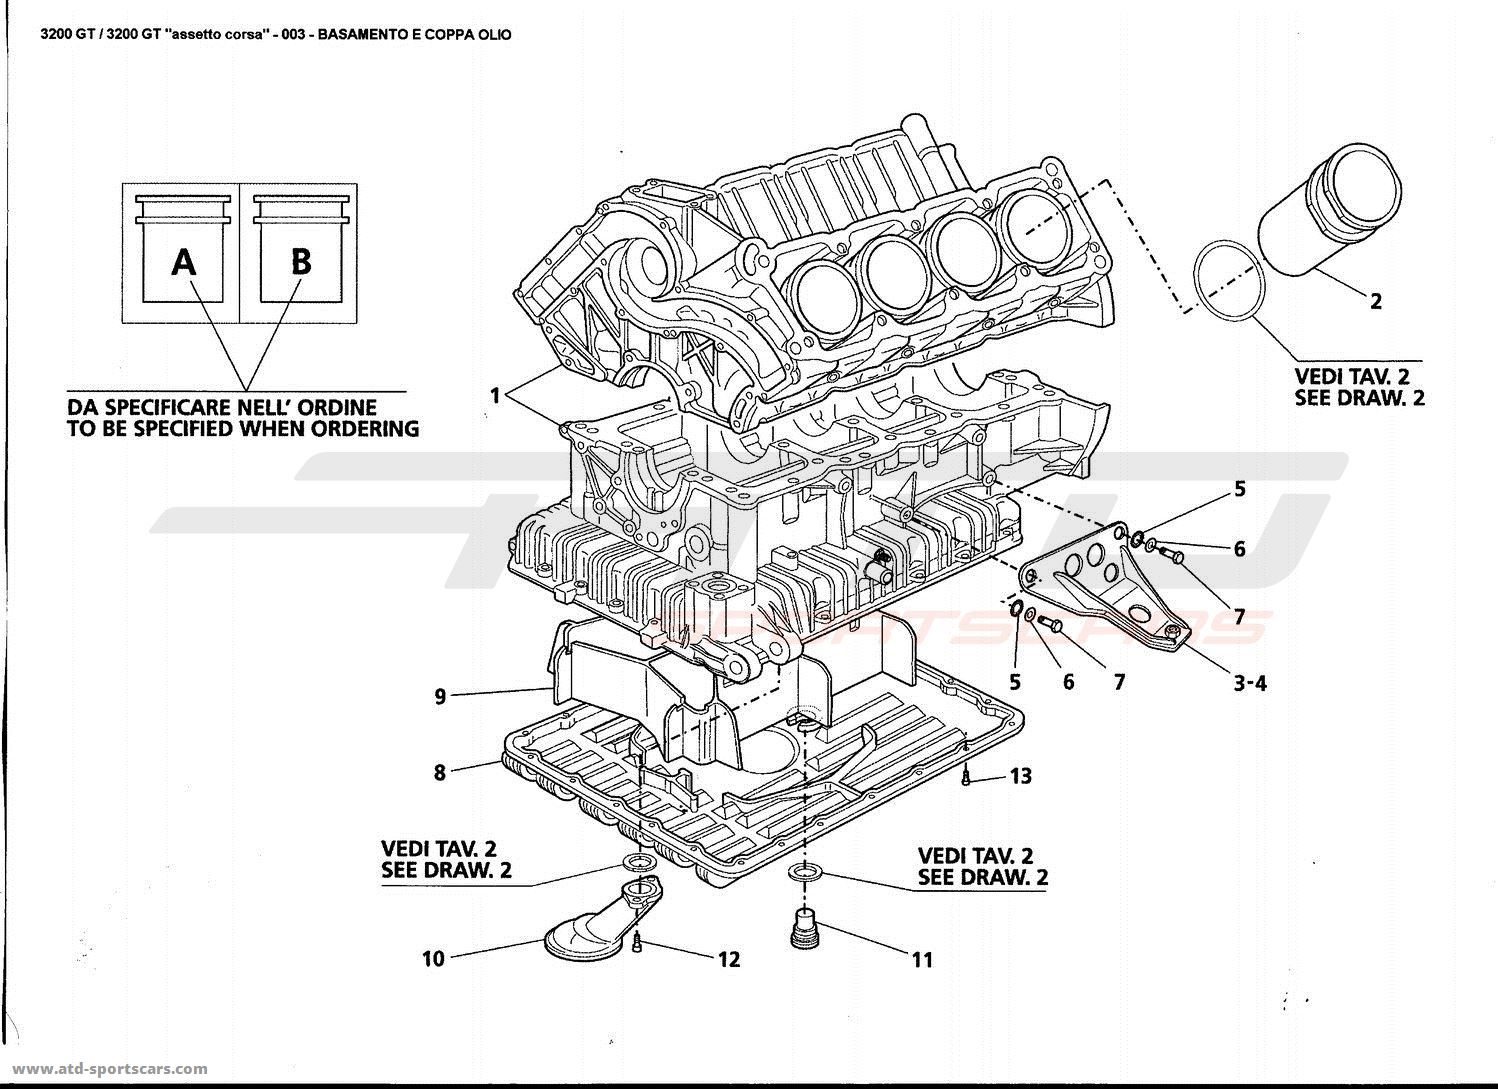 dry sump oil system schematic